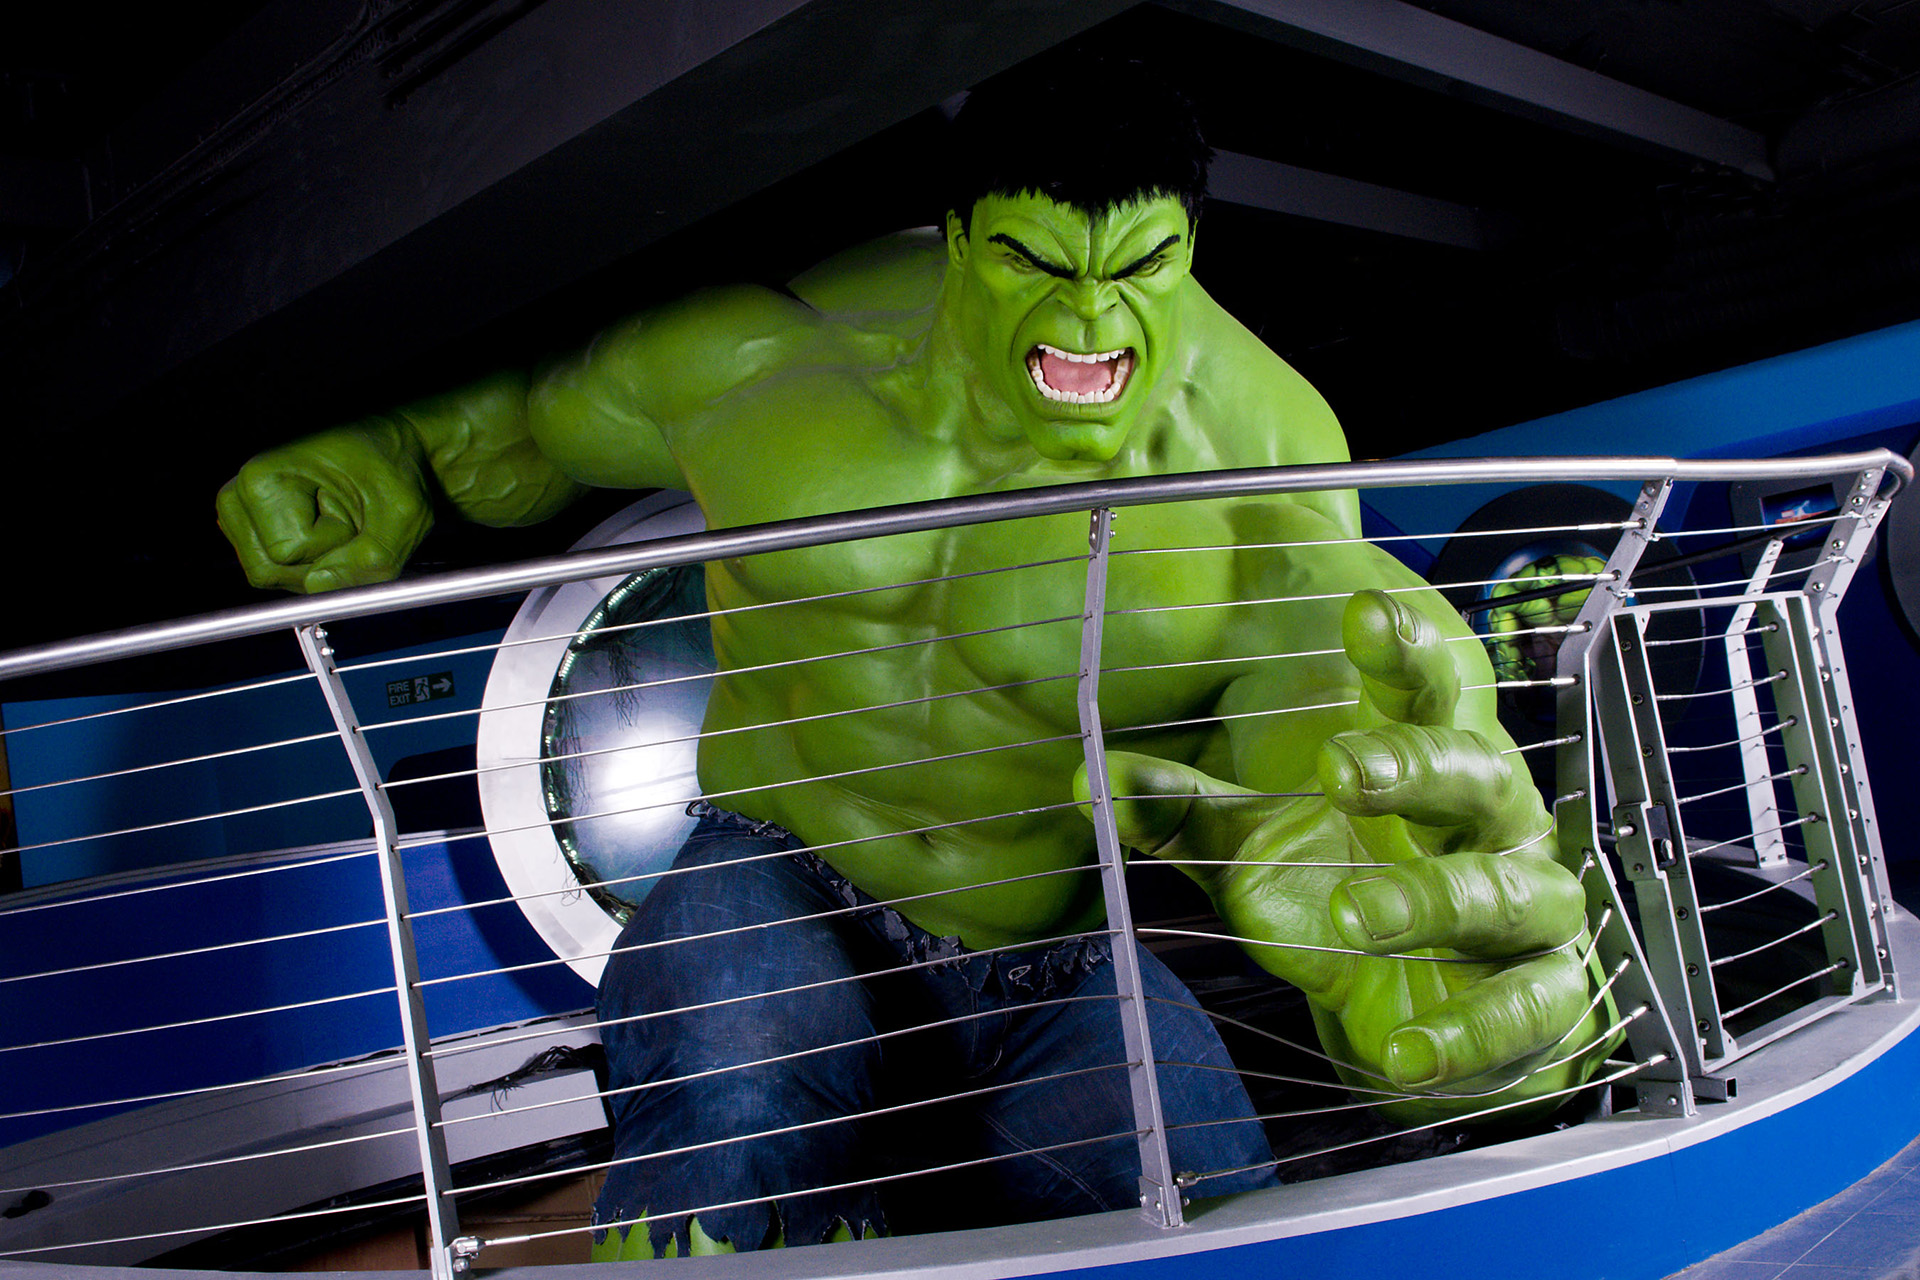 The Incredible Hulk's figure at Madame Tussauds London